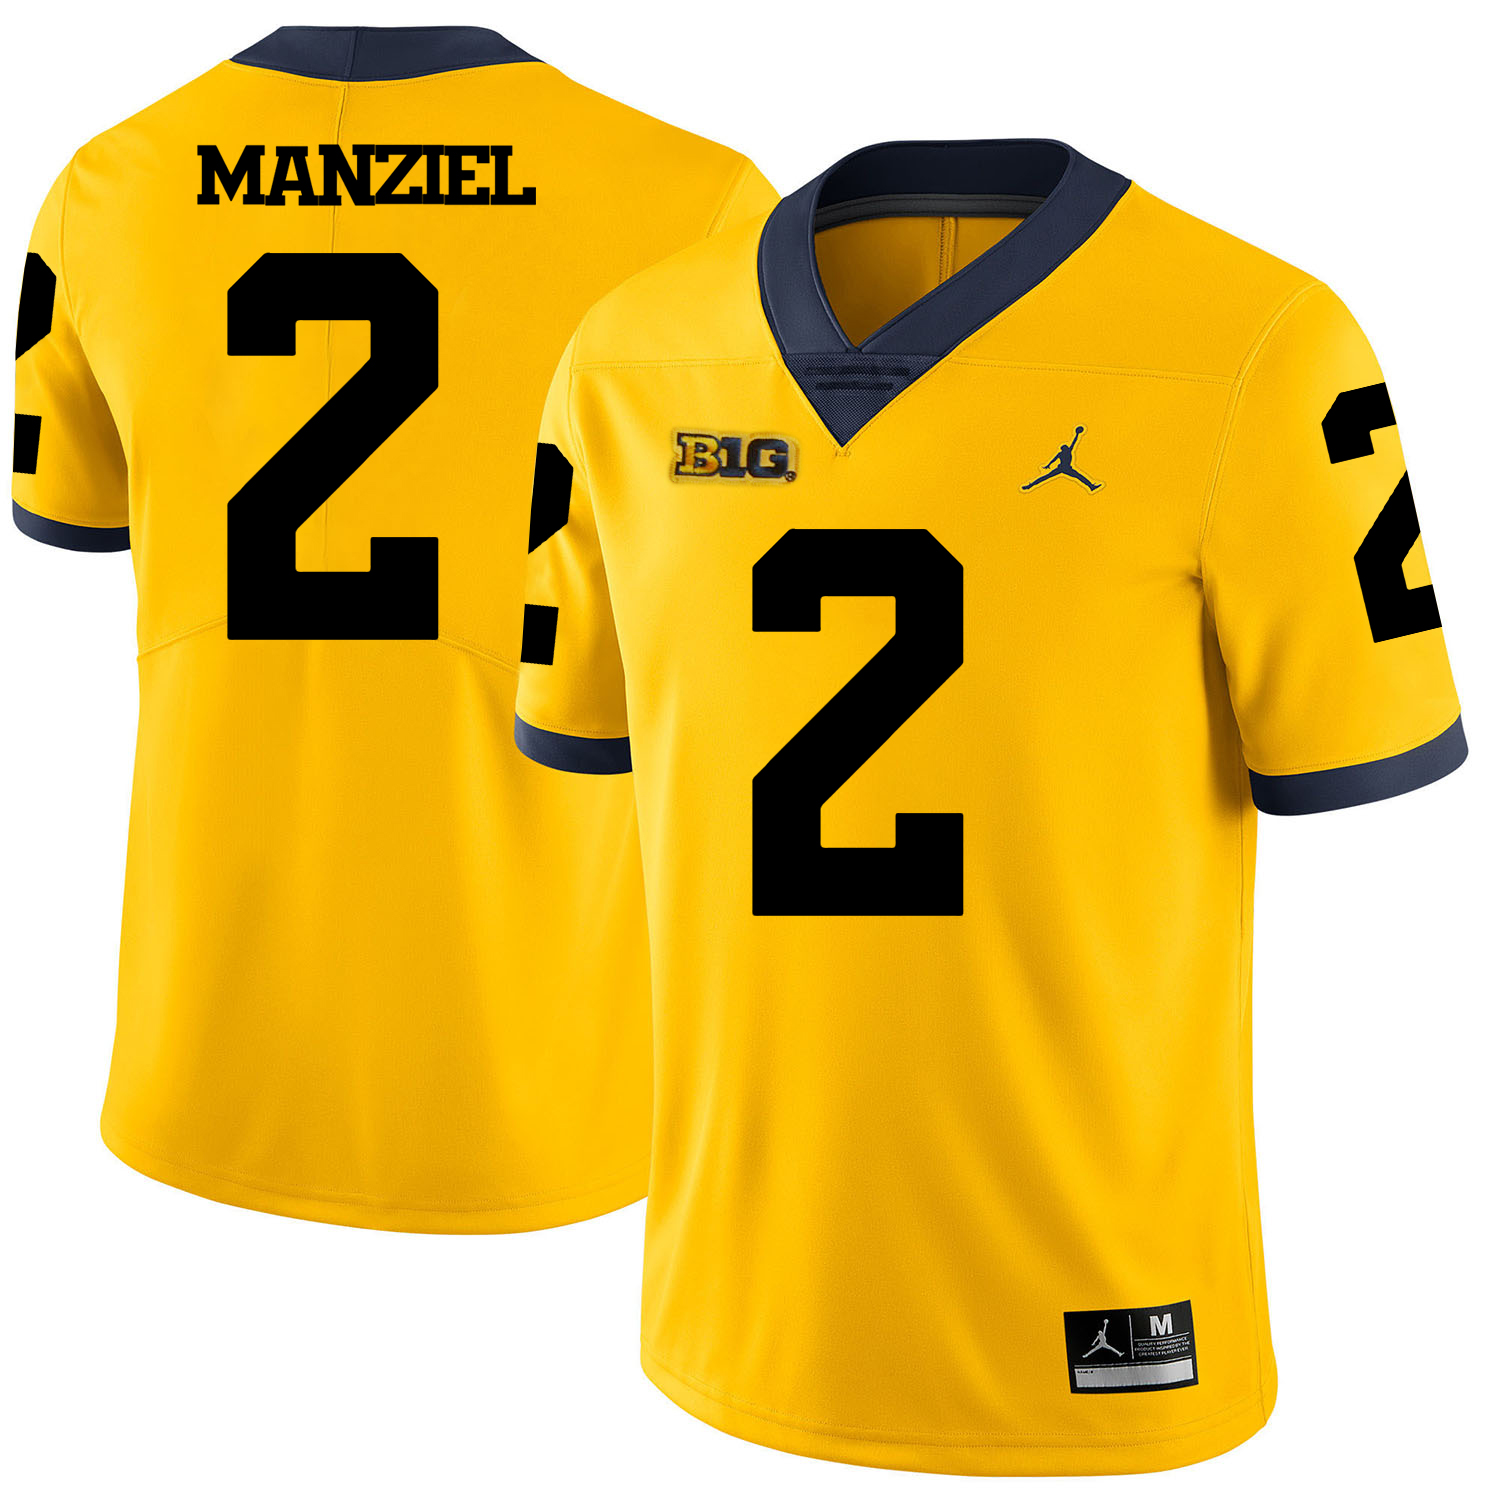 Michigan Wolverines 2 Johnny Manziel Yellow College Football Jersey